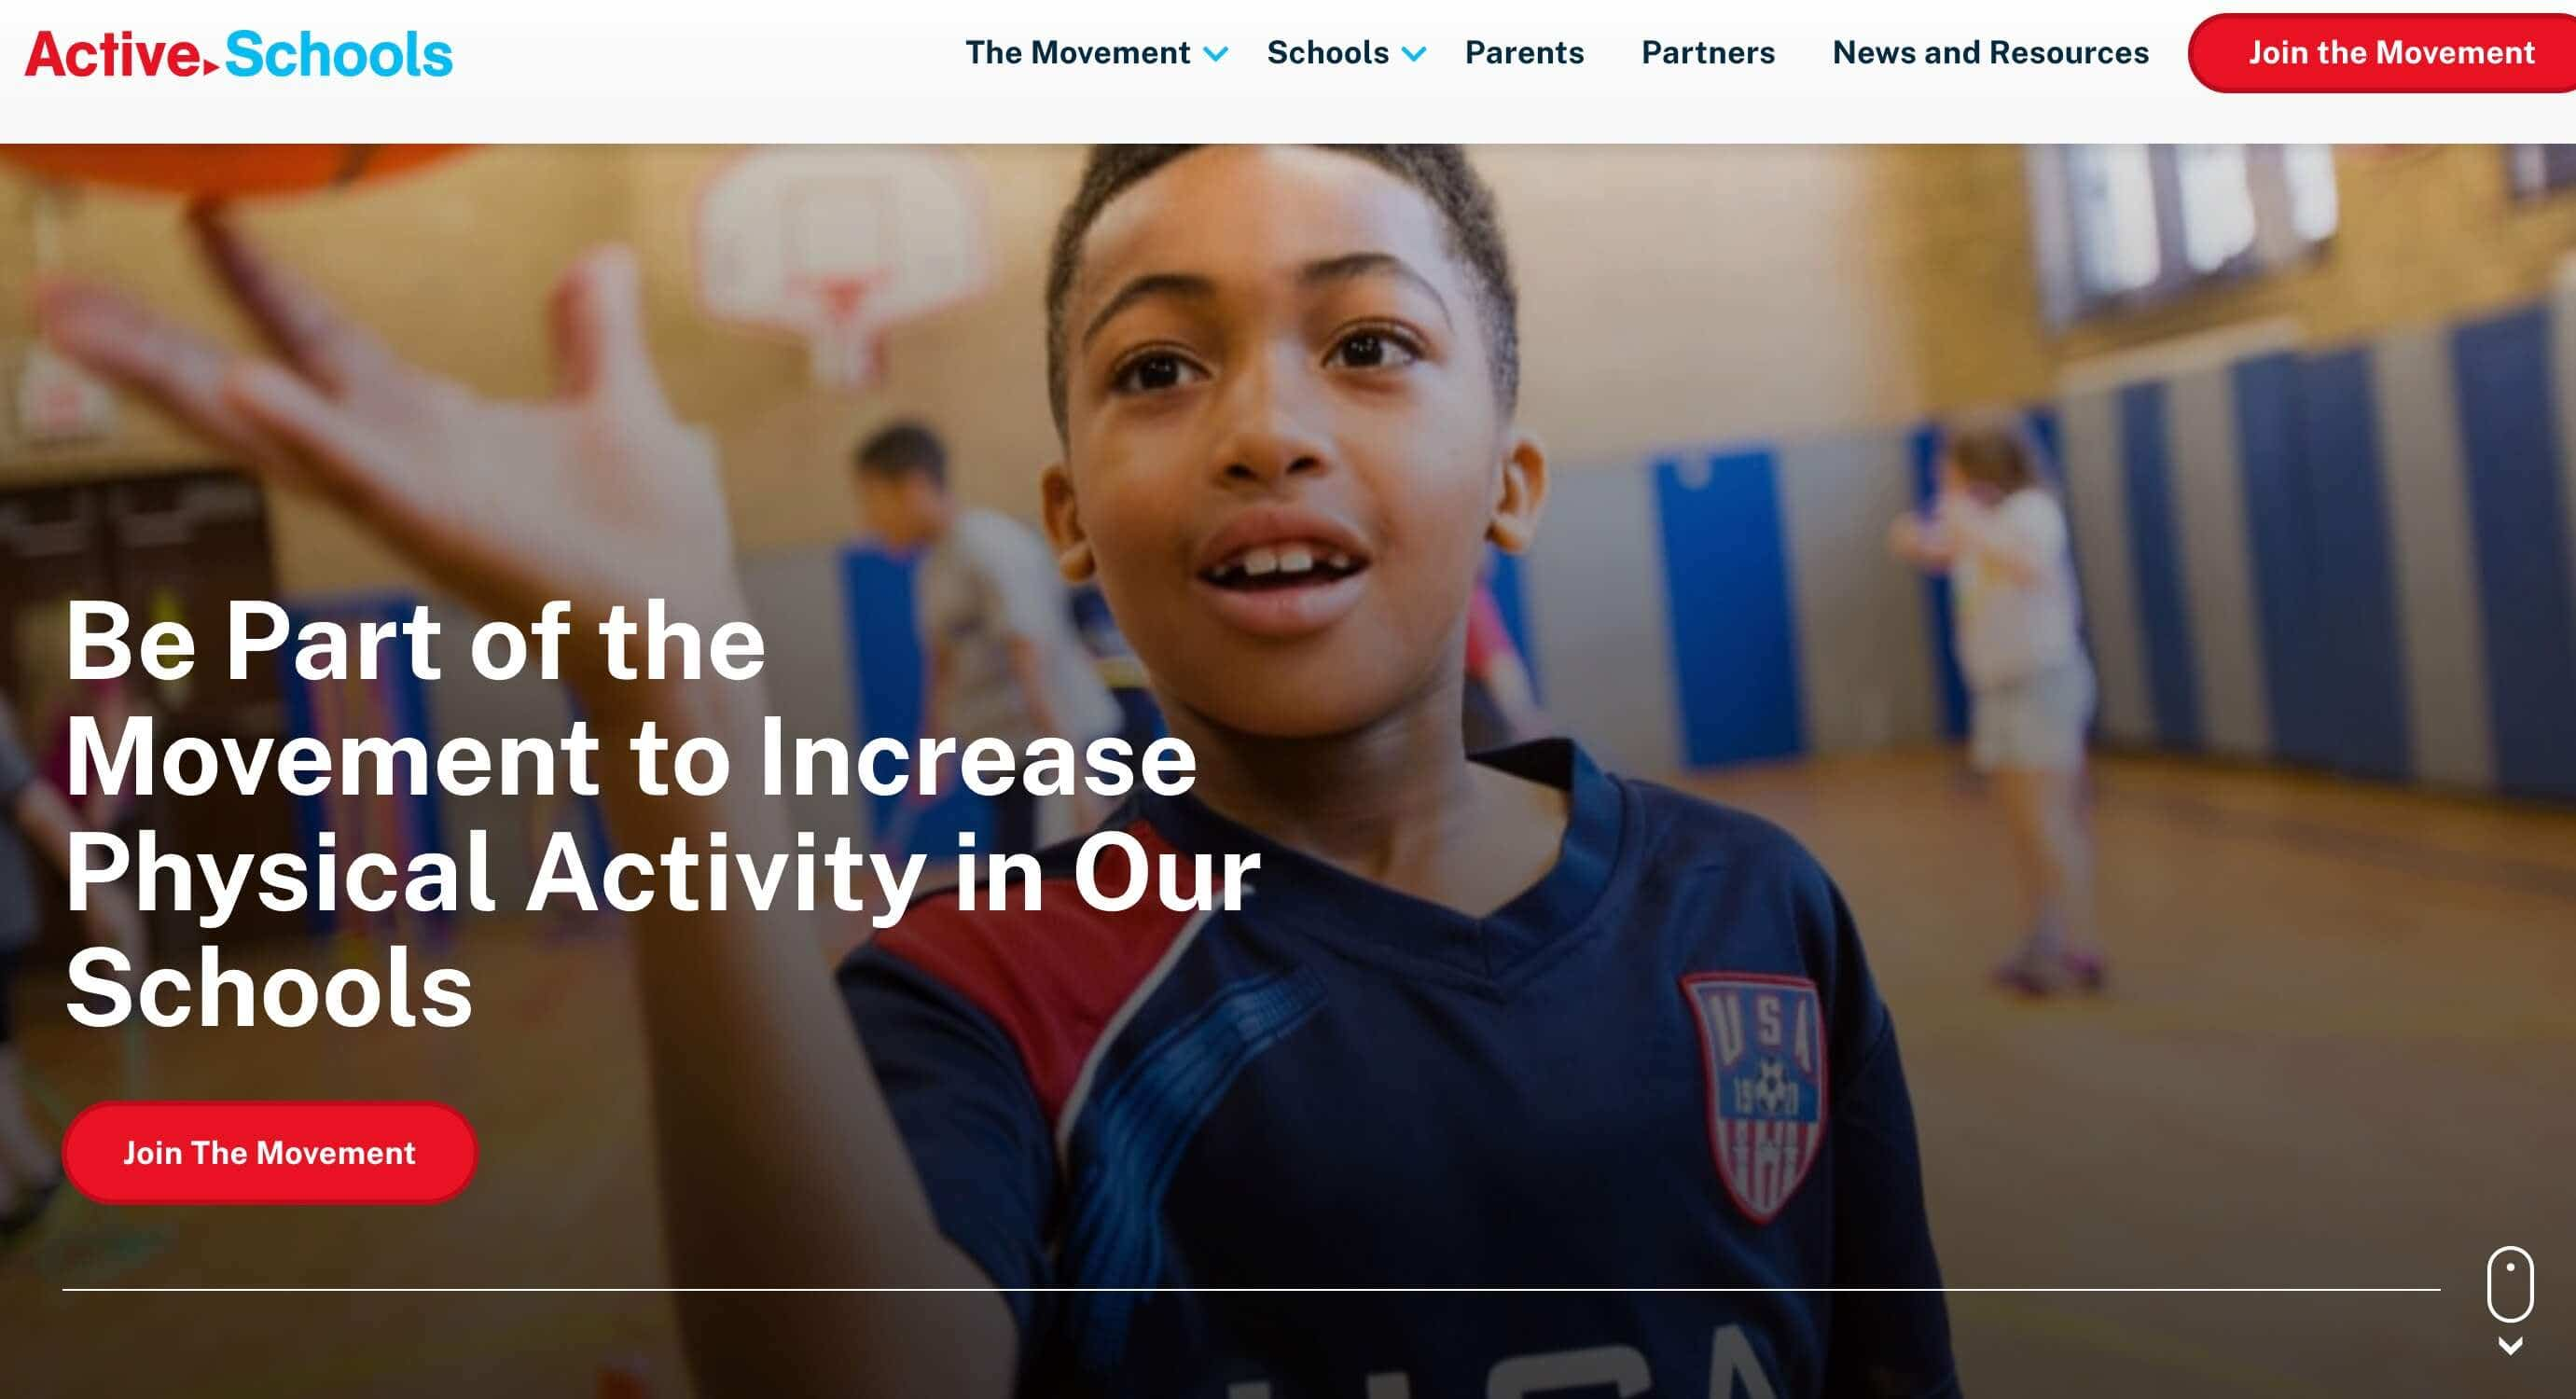 active schools website design